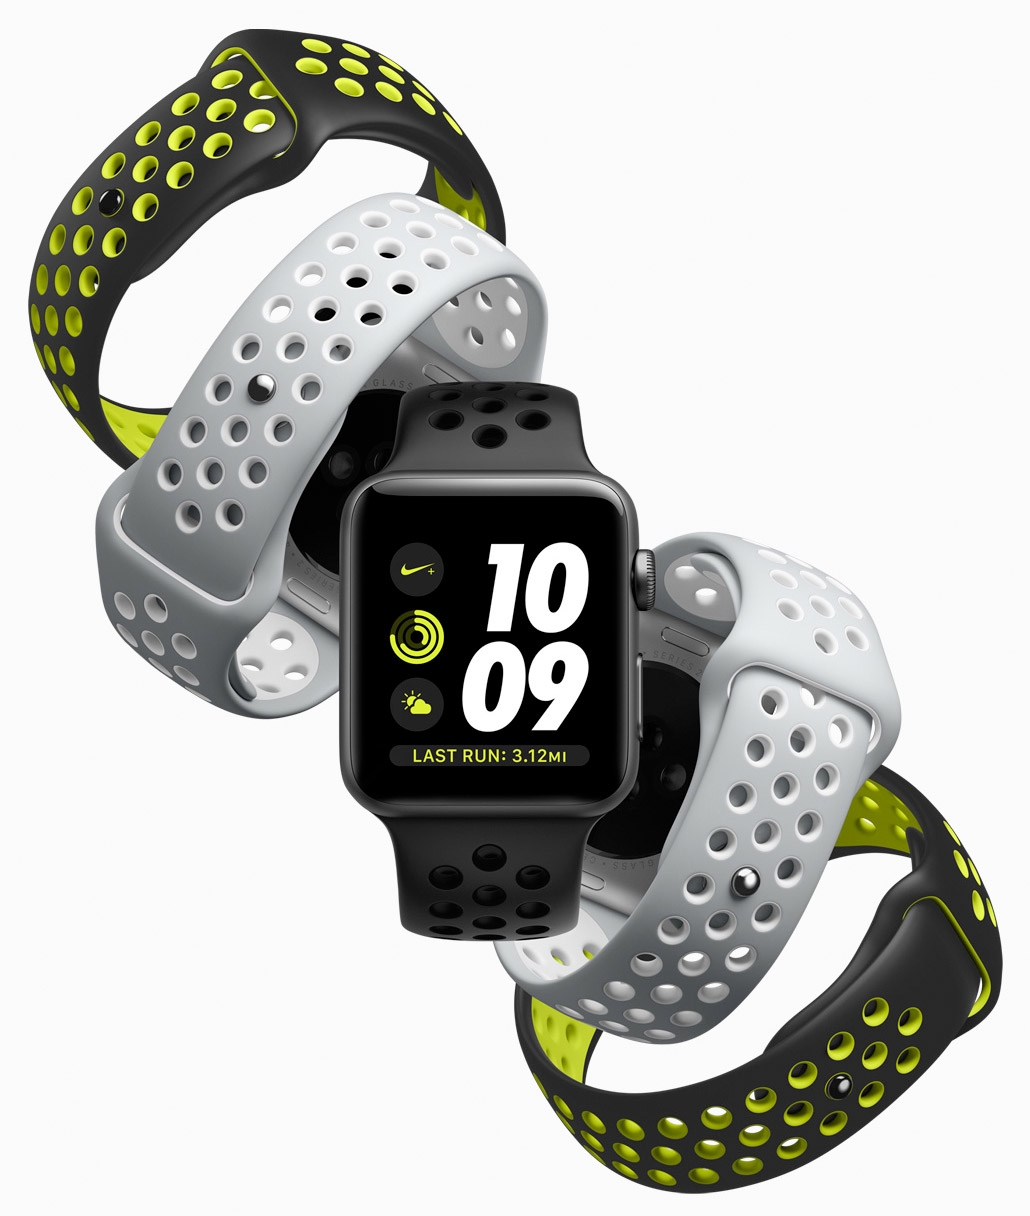 Nuevas correas para el Apple Watch (Primavera del 2017)